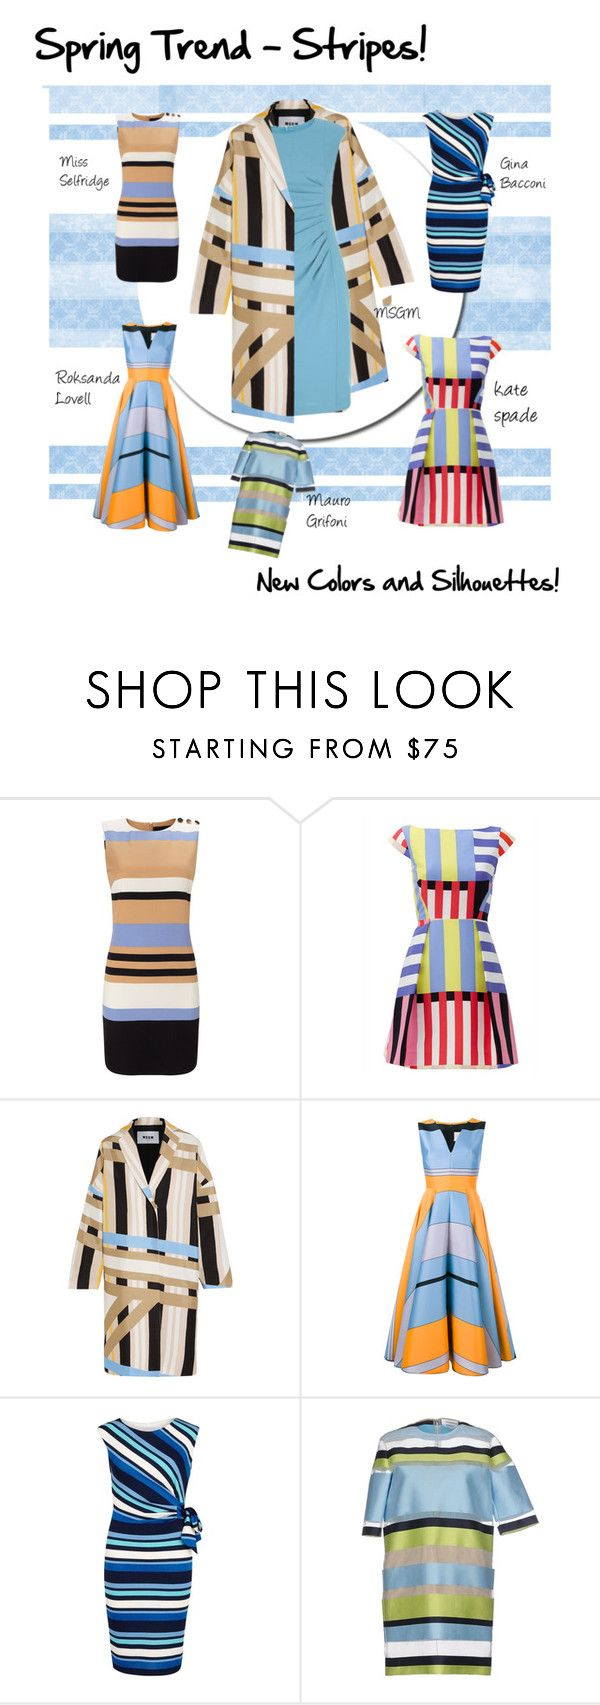 """Spring Trend - The New Stripe!"" by fernshadow ❤ liked on Polyvore featuring Miss Selfridge, Kate Spade, MSGM, Roksanda, Gina Bacconi, Mauro Grifoni and MaxMara"